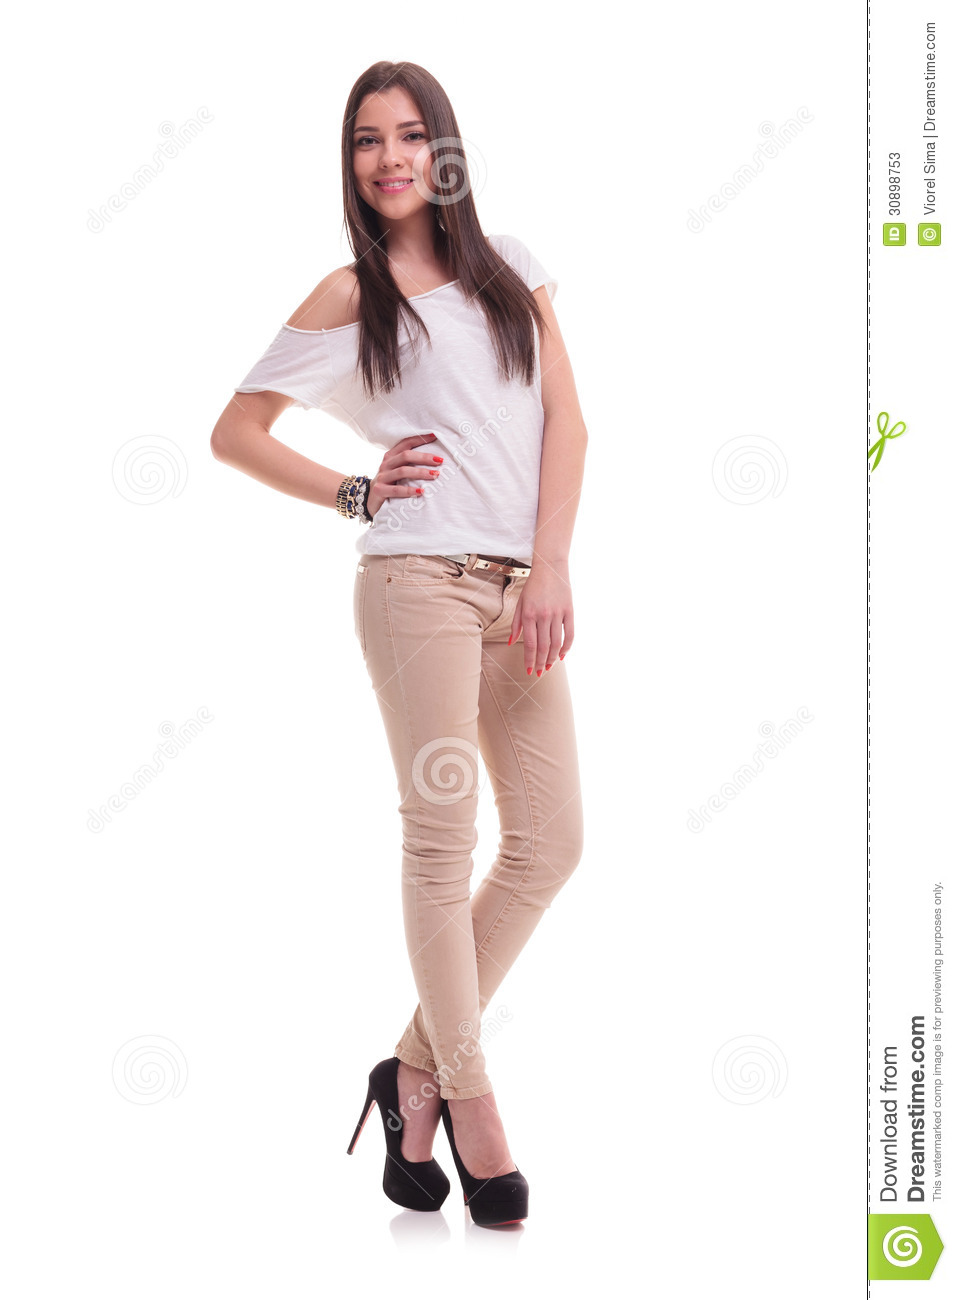 ropa chica joven